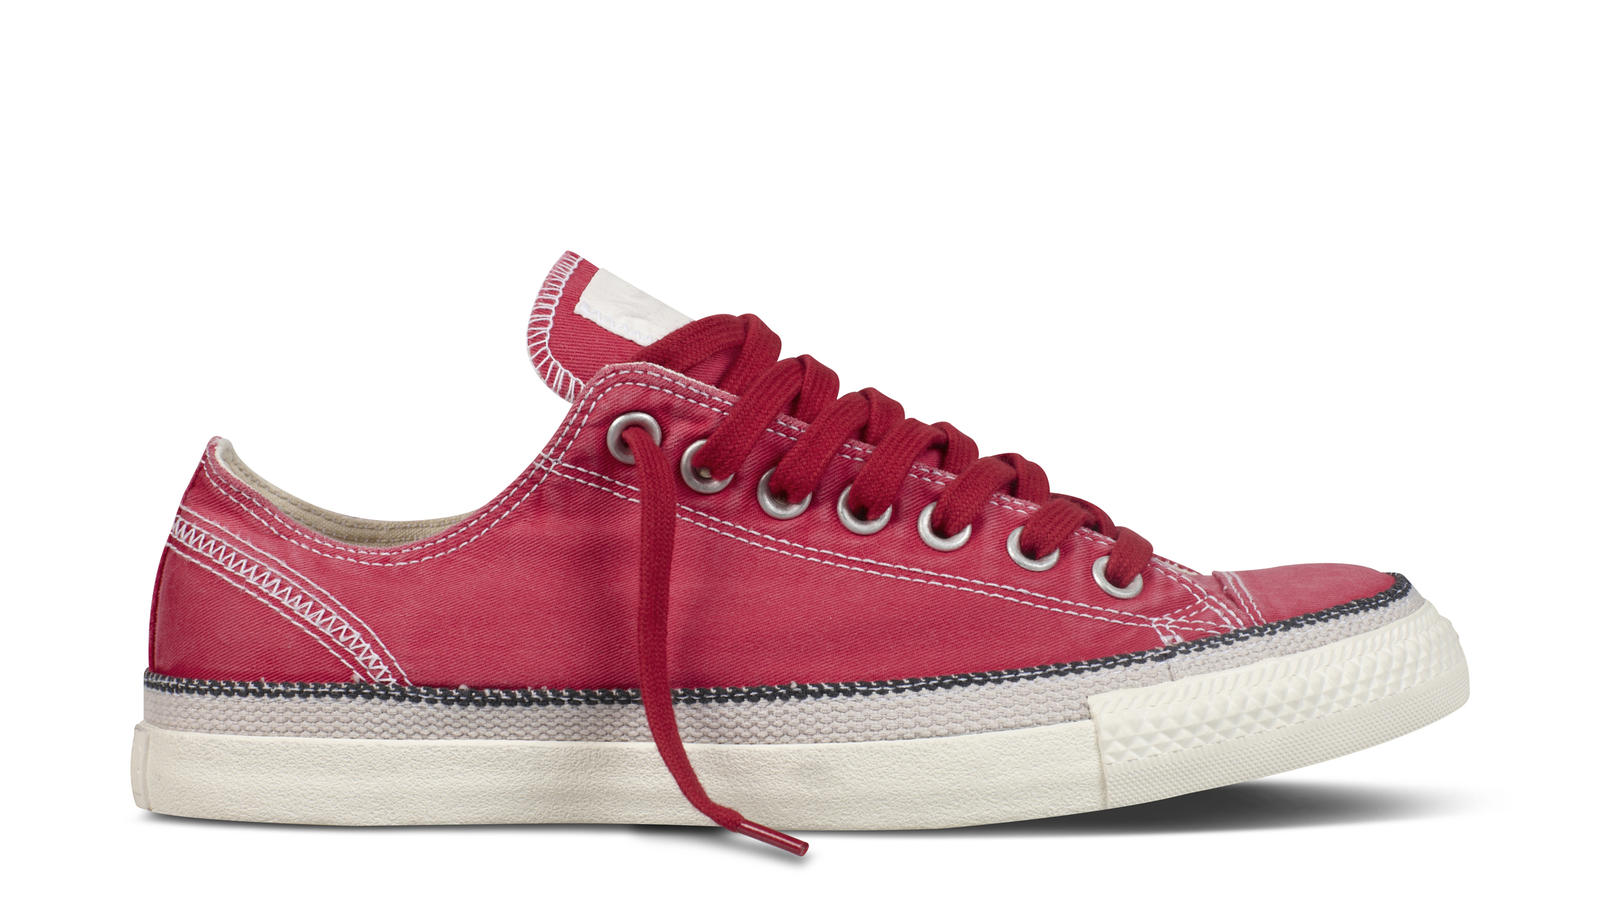 7f71ef951c2bc3 Converse Launches Its Spring Summer 2013 All Star Footwear ...